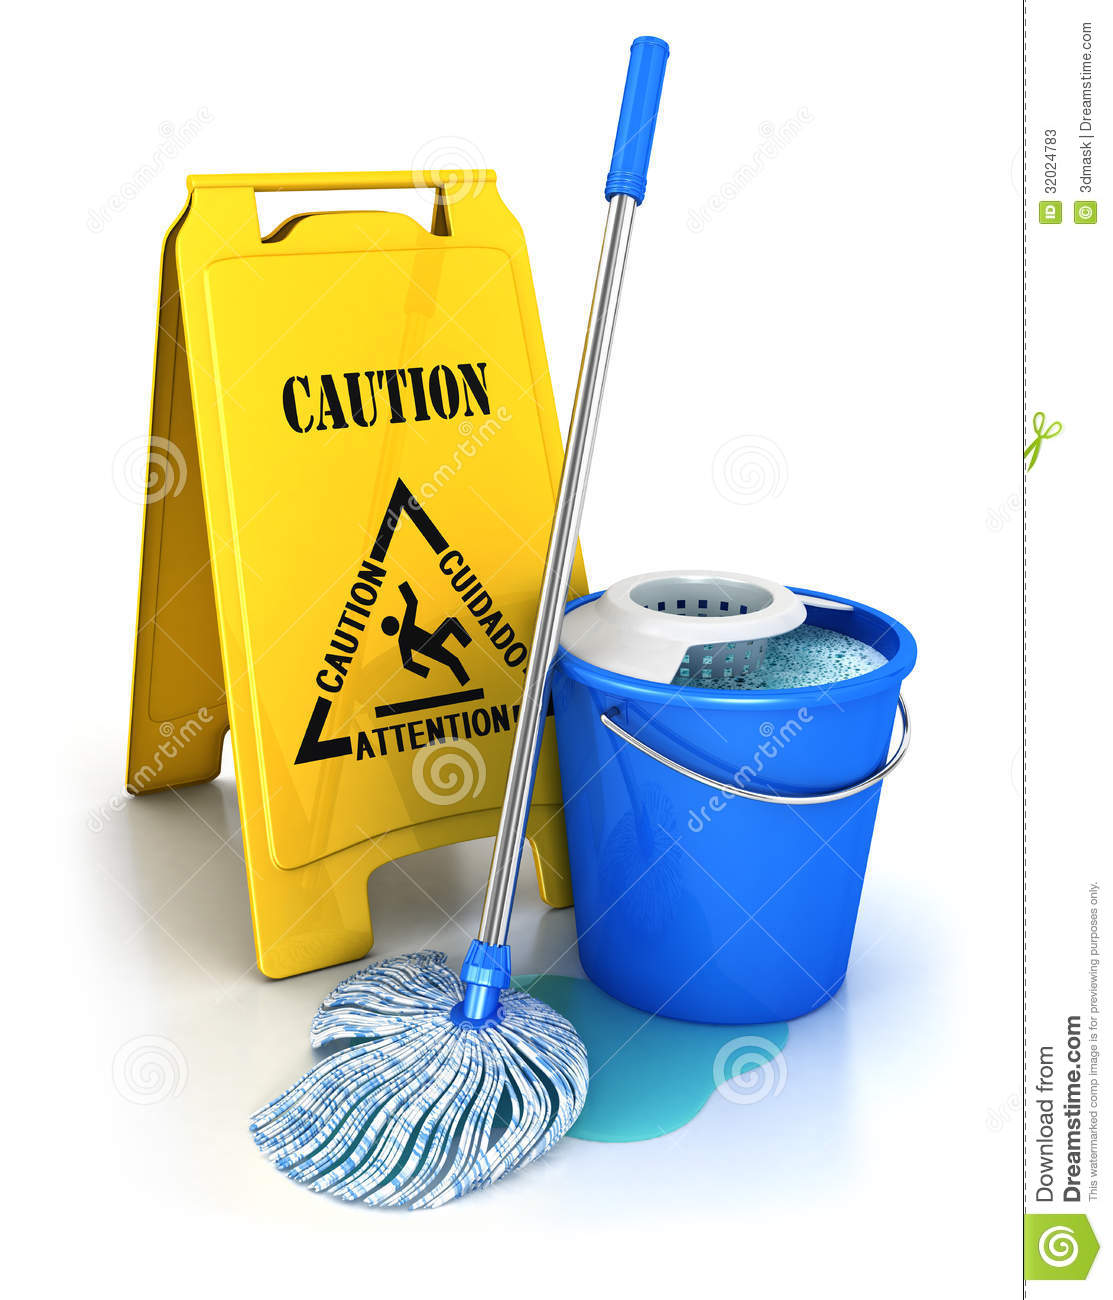 d-cleaning-equipment-white-background-image-32024783.jpg